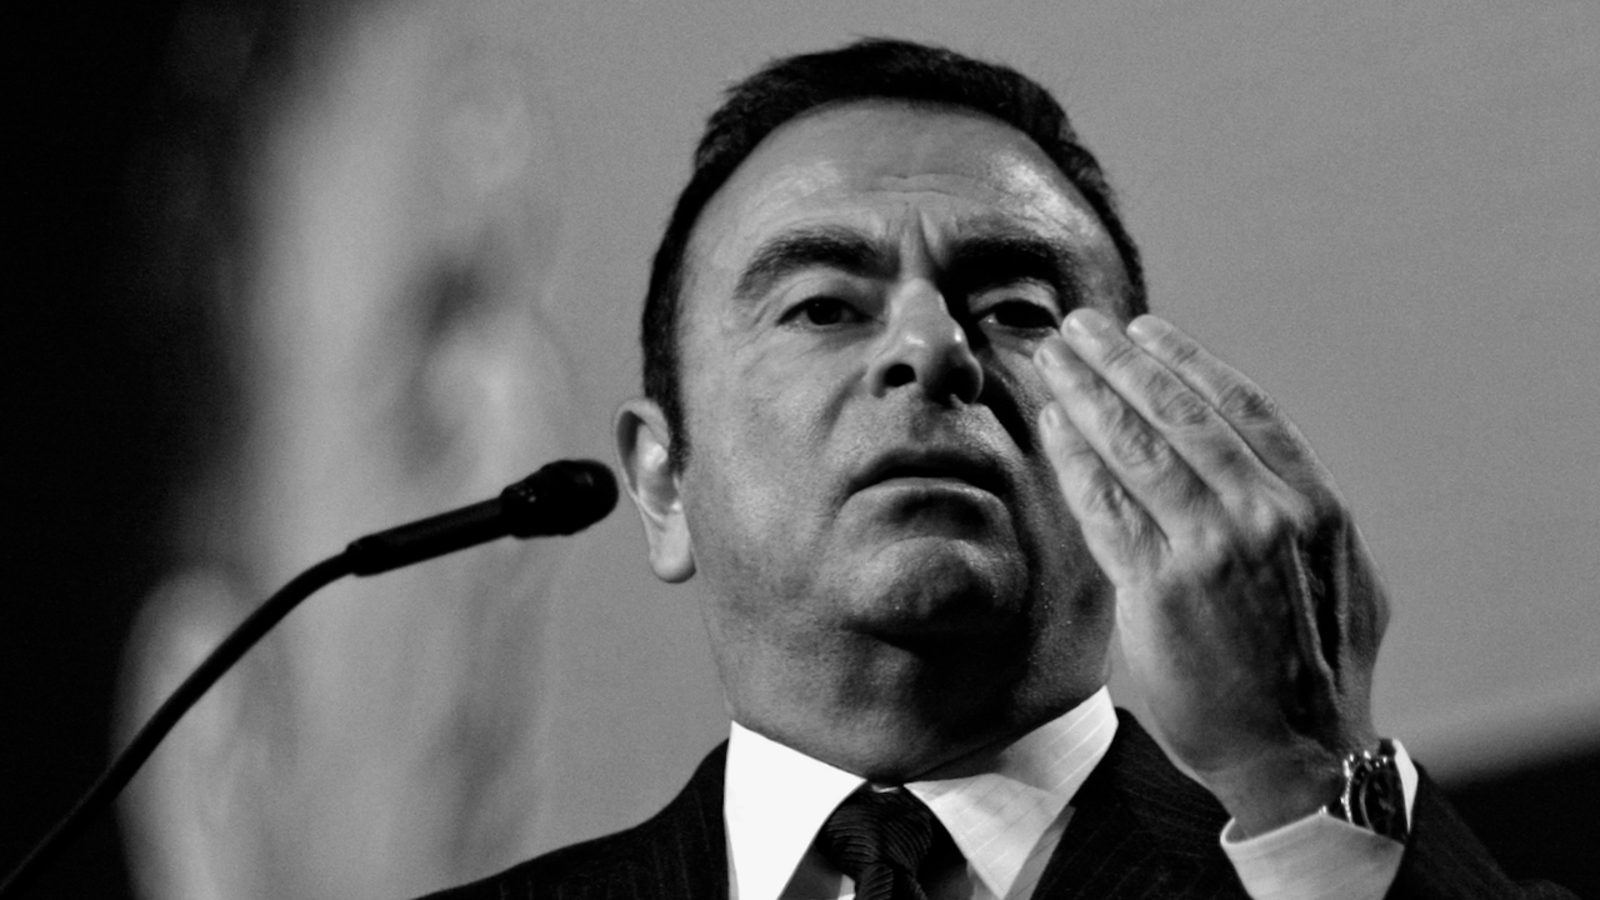 Was Carlos Ghosn Whacked?